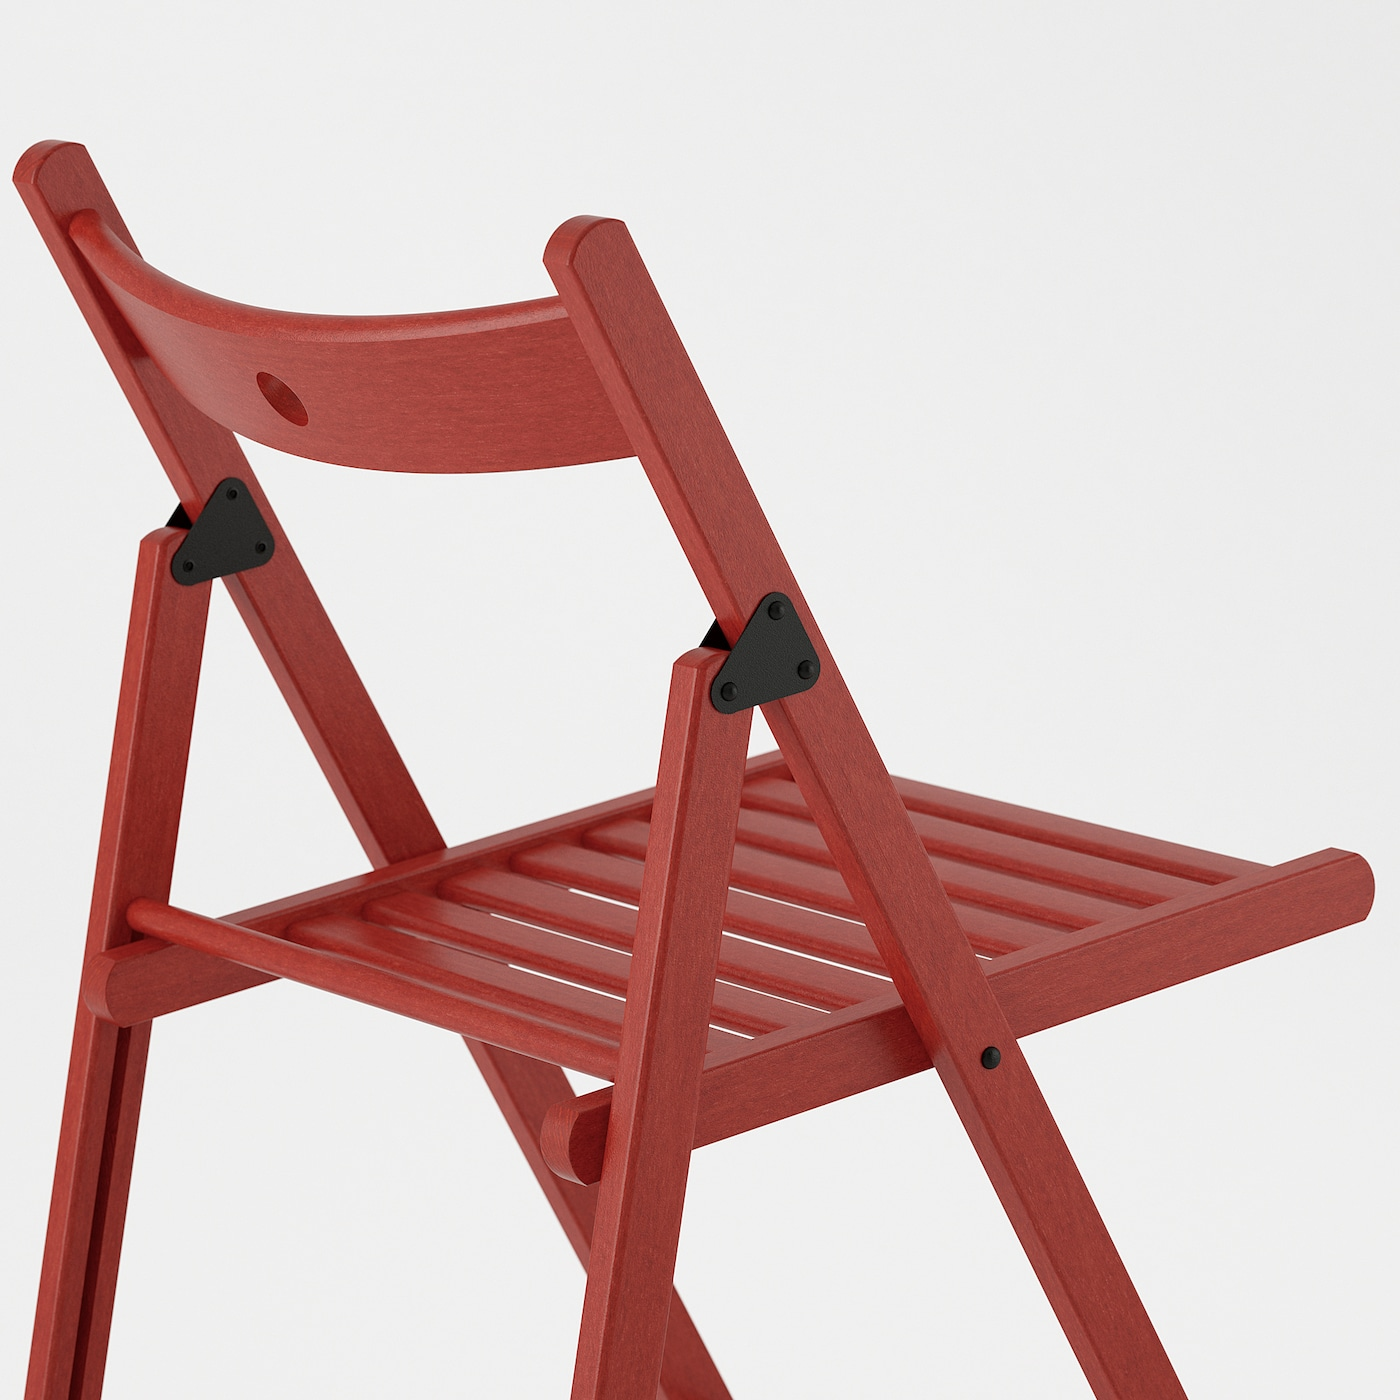 TERJE Folding chair red